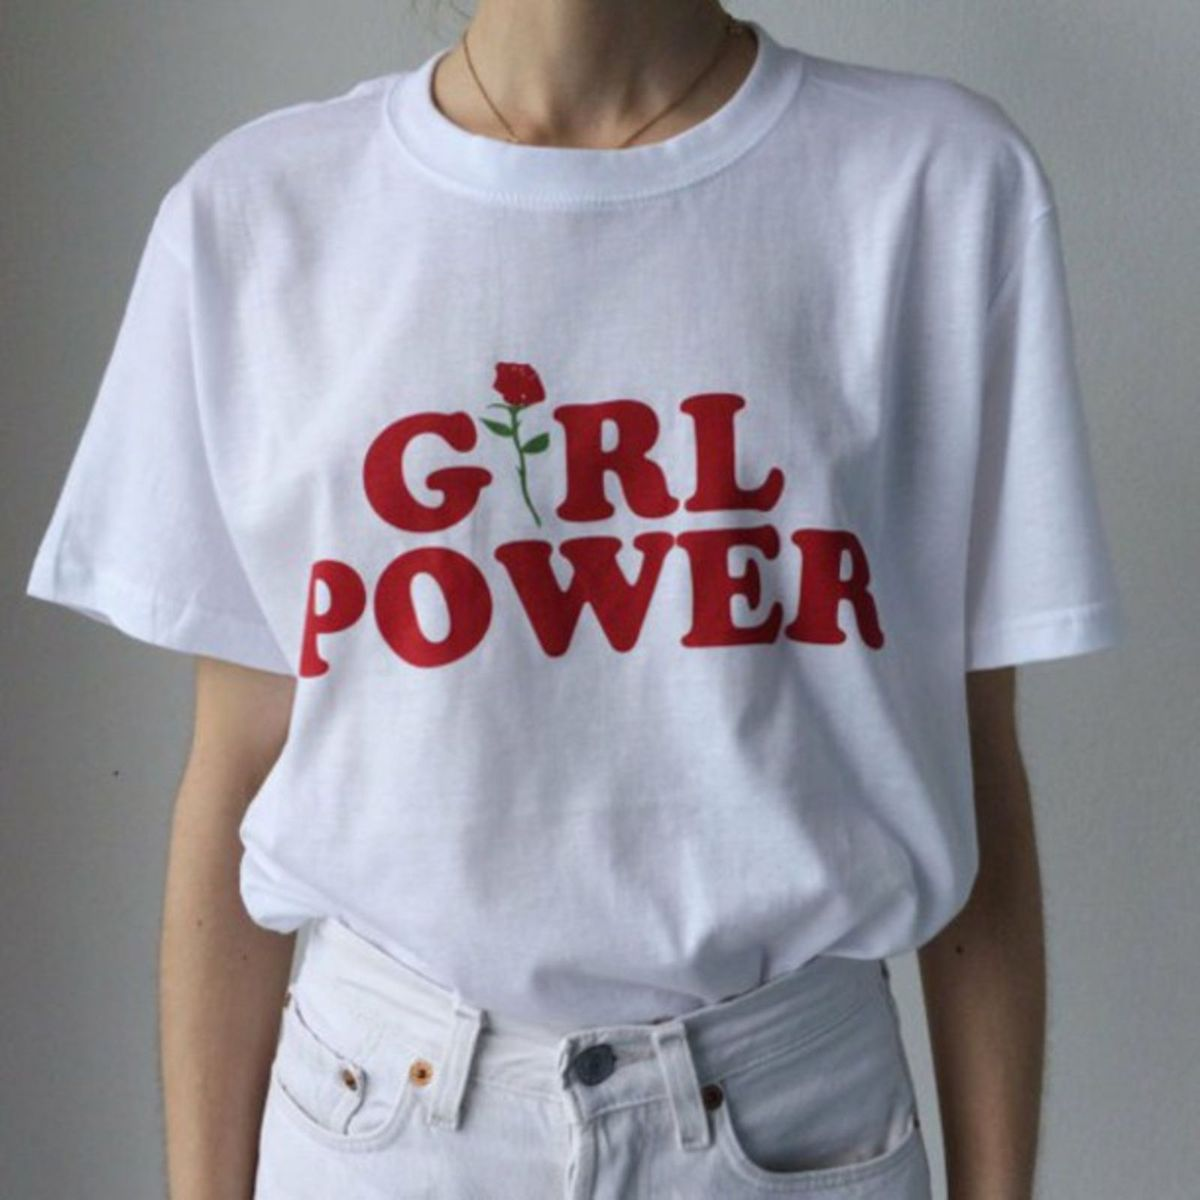 girl power - camisetas affection-store